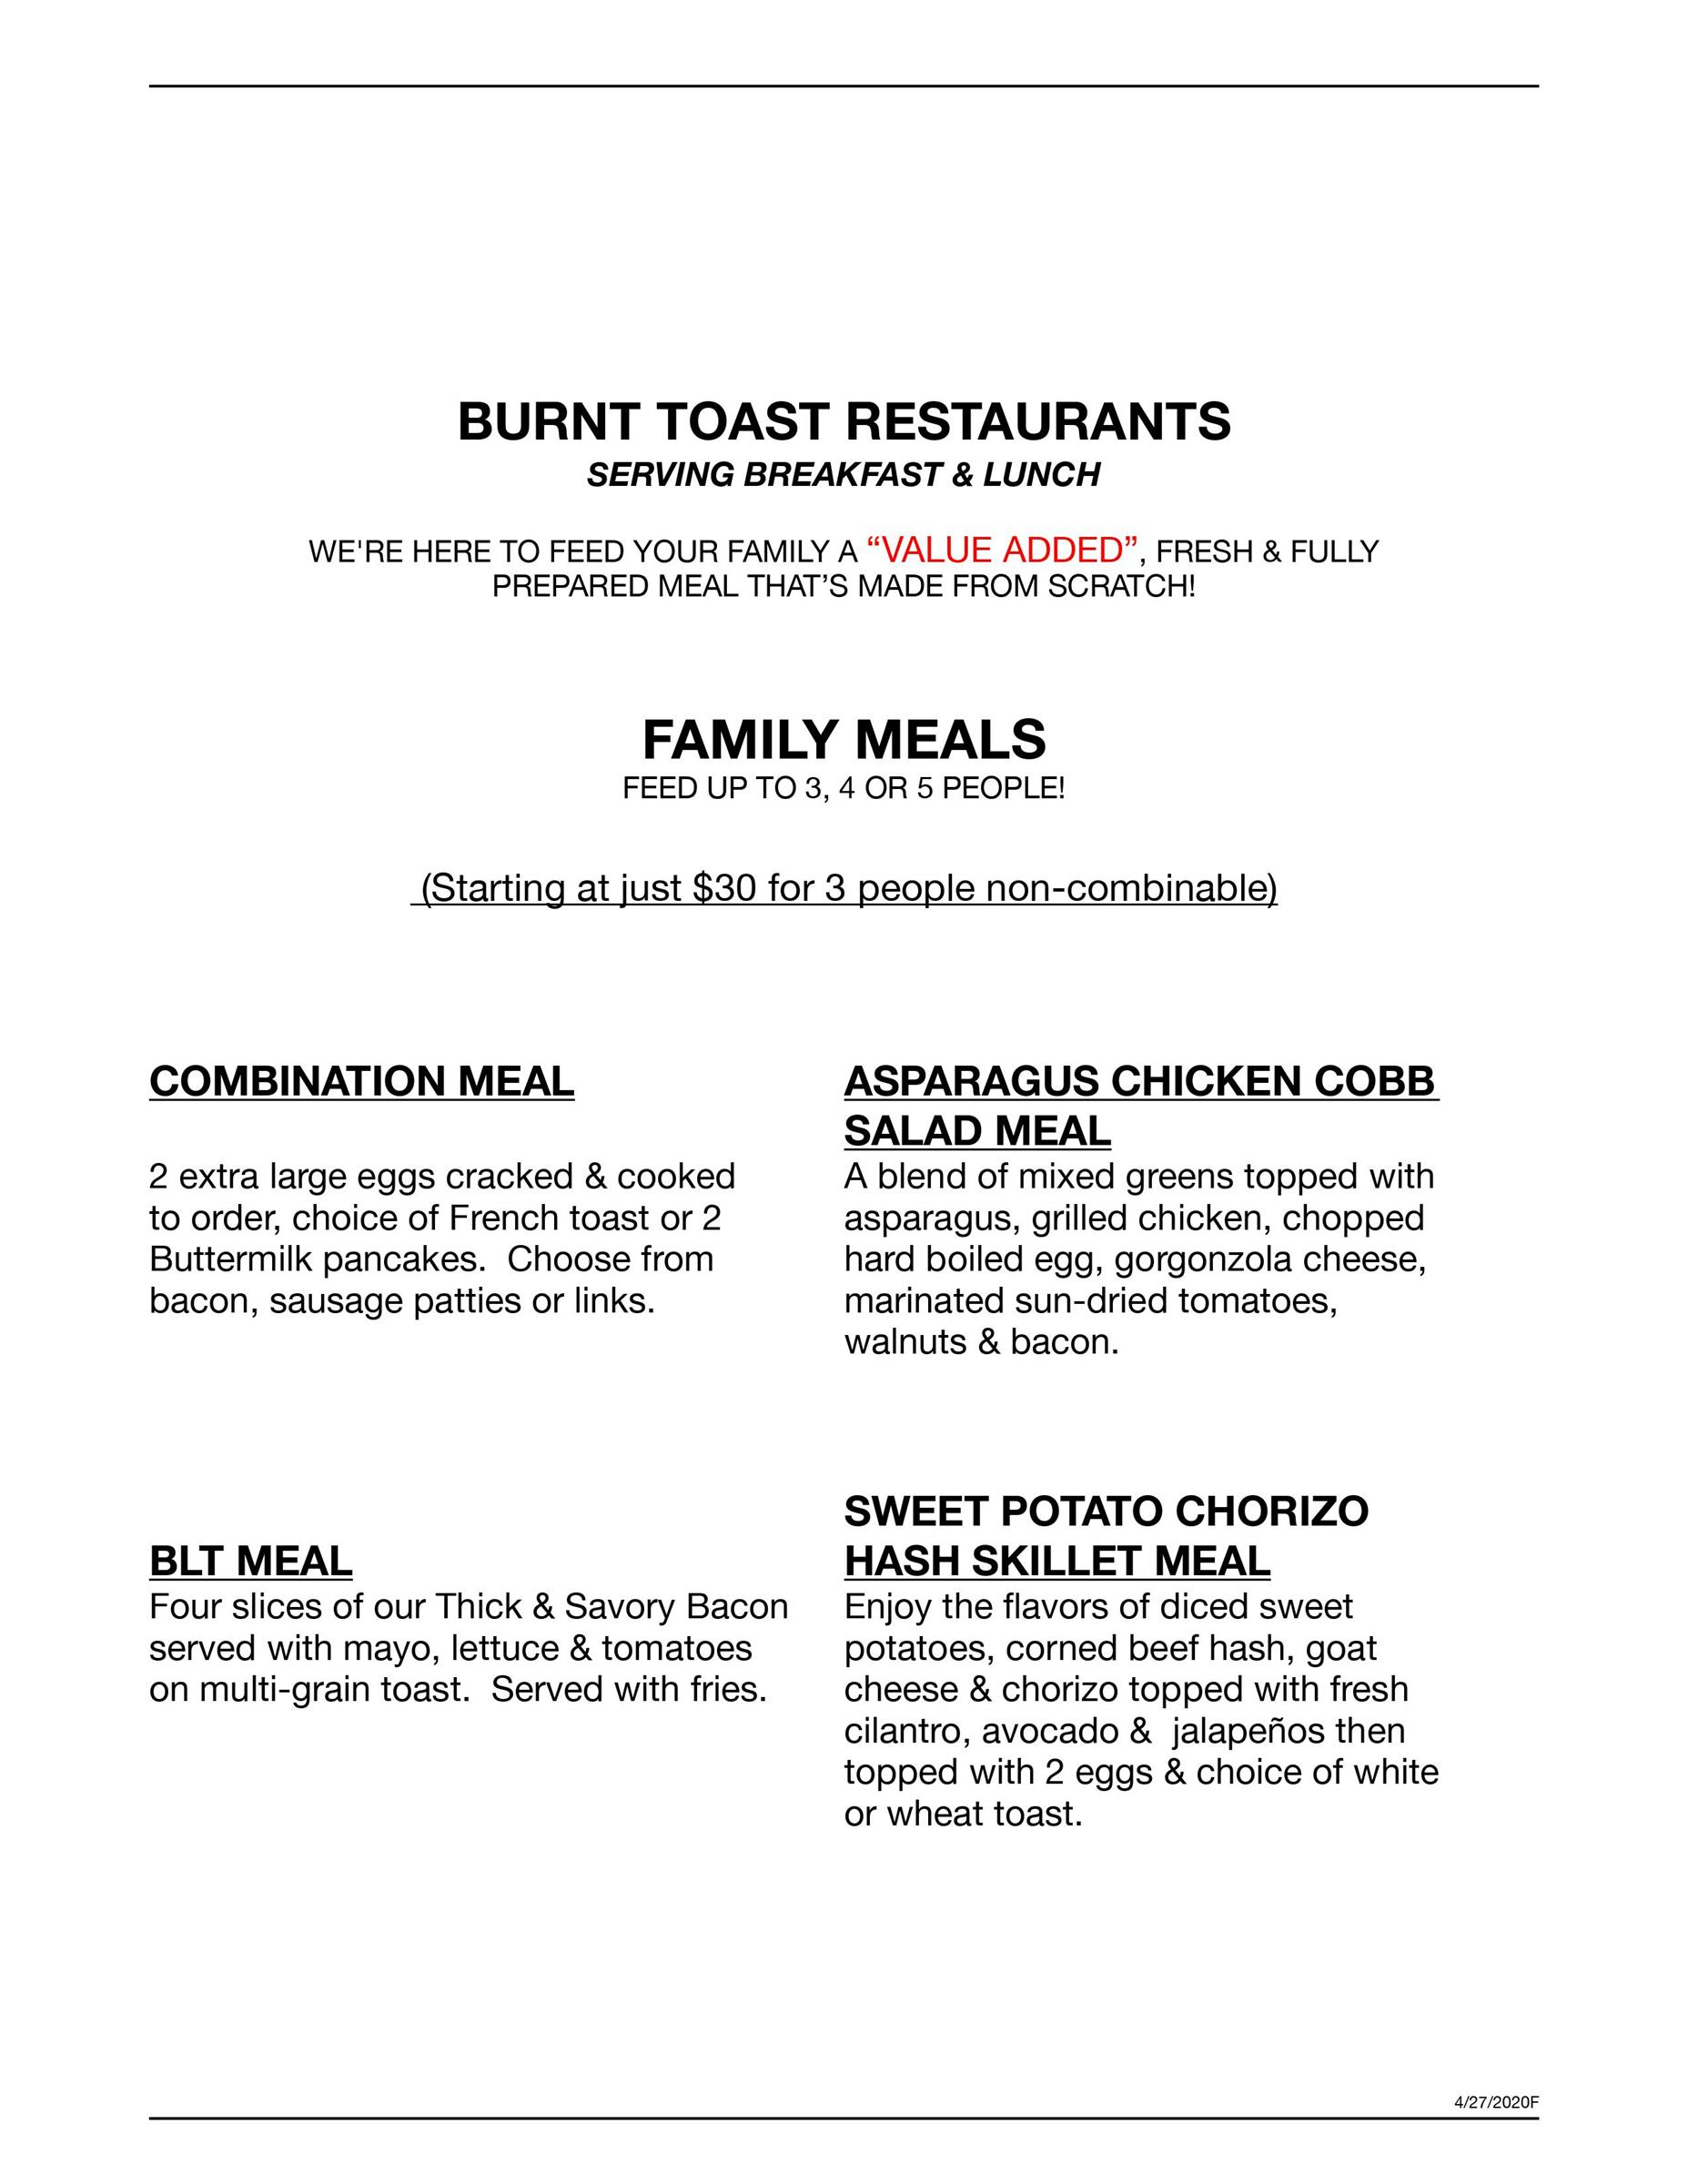 "BURNT TOAST RESTAURANTS SERVING BREAKFAST & LUNCH WE'RE HERE TO FEED YOUR FAMILY A ""VALUE ADDED"", FRESH & FULLY PREPARED MEAL THAT'S MADE FROM SCRATCH!  FAMILY MEALS FEED UP TO 3, 4 OR 5 PEOPLE!    (Starting at just $30 for 3 people non-combinable)  COMBINATION MEAL ASPARAGUS CHICKEN COBB SALAD MEAL 2 extra large eggs cracked & cooked		A blend of mixed greens topped with 	 to order, choice of French toast or 2		asparagus, grilled chicken, chopped  Buttermilk pancakes.  Choose from 		hard boiled egg, gorgonzola cheese,  bacon, sausage patties or links.		marinated sun-dried tomatoes,  							walnuts & bacon.  							SWEET POTATO CHORIZO BLT MEAL HASH SKILLET MEAL Four slices of our Thick & Savory Bacon	Enjoy the flavors of diced sweet  served with mayo, lettuce & tomatoes	potatoes, corned beef hash, goat on multi-grain toast.  Served with fries.	cheese & chorizo topped with fresh 							cilantro, avocado &  jalapeños then  										topped with 2 eggs & choice of white 							or wheat toast."